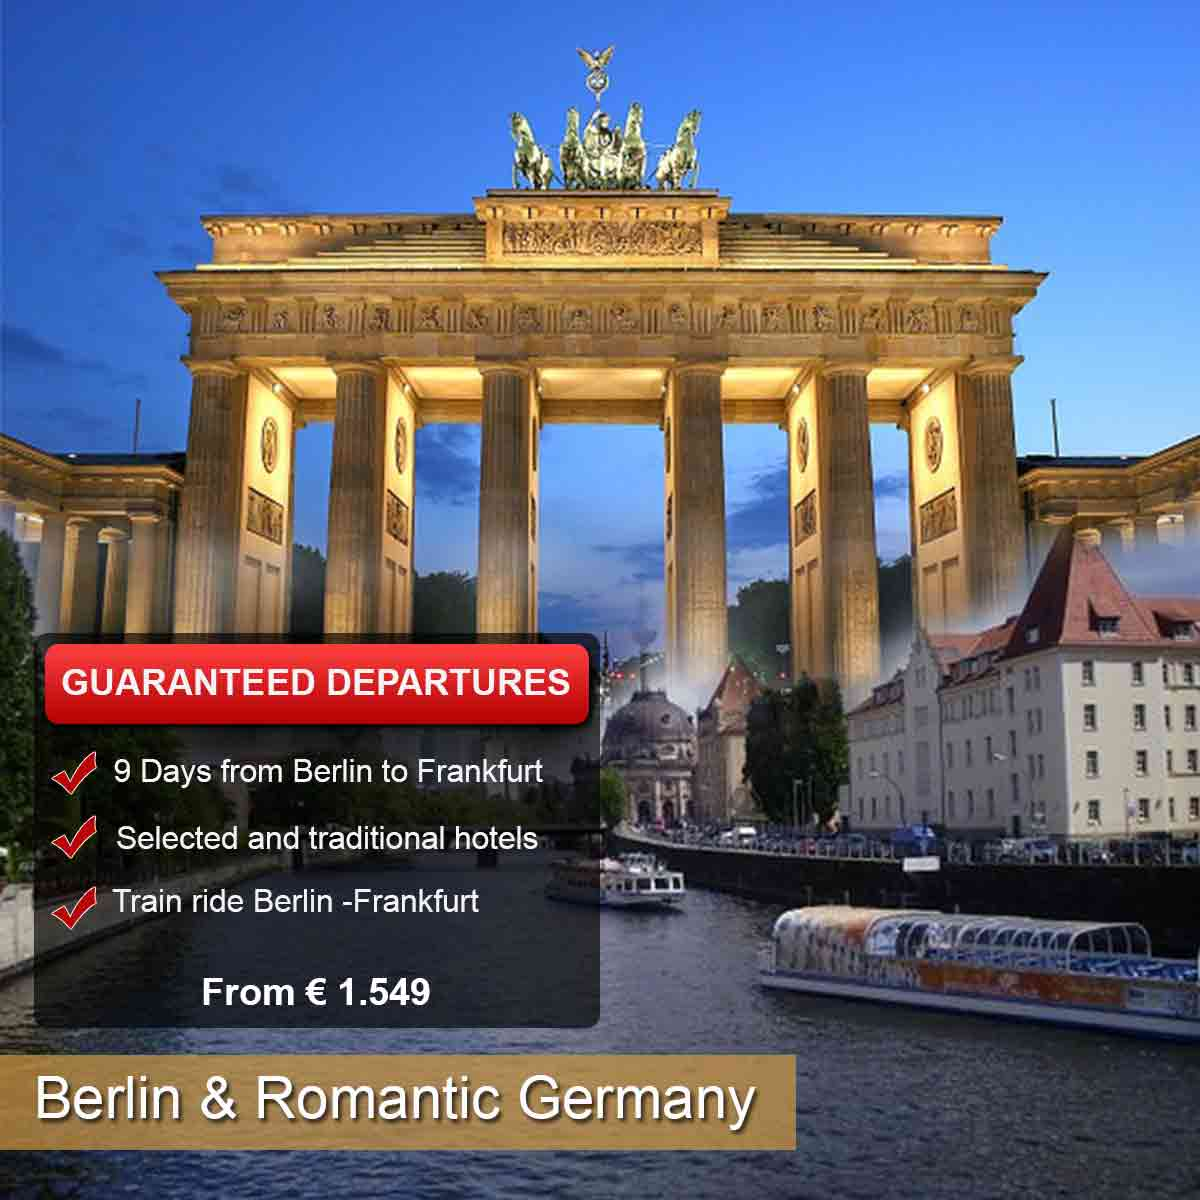 Berlin & Romantic Germany